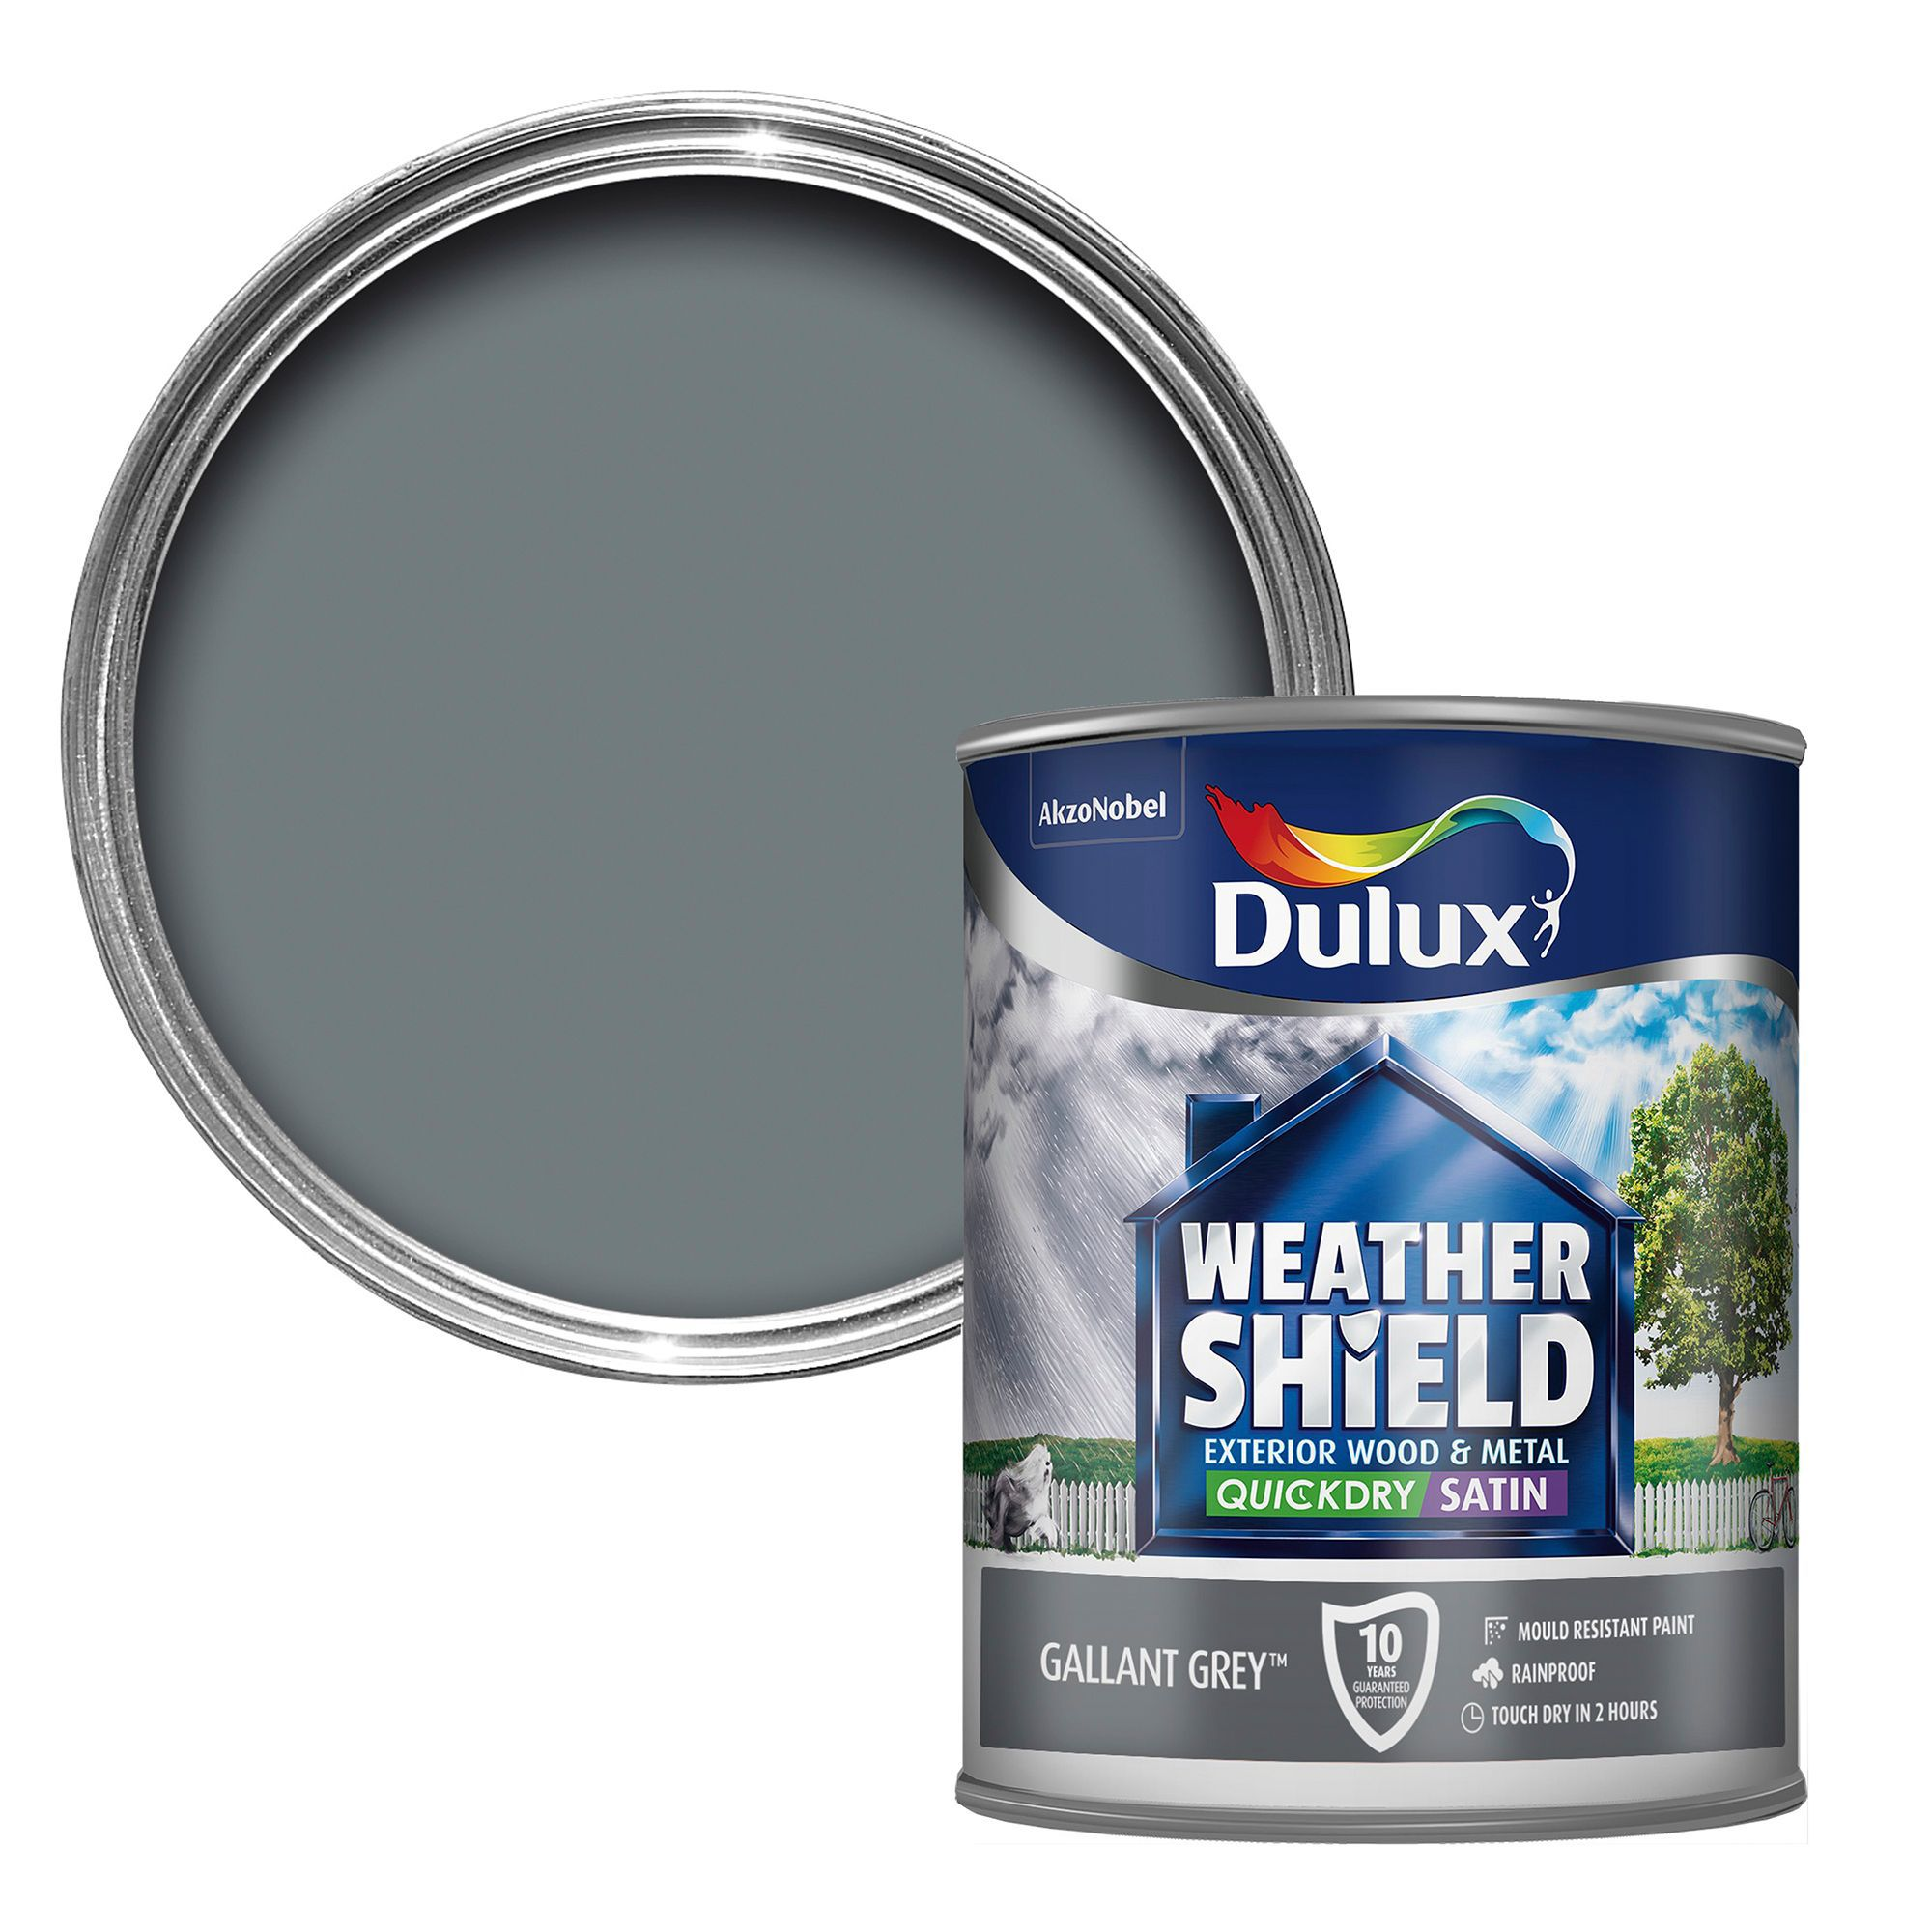 Dulux Weathershield Exterior Gallant Grey Satin Wood U0026 Metal Paint 750ml |  Departments | DIY At Bu0026Q.